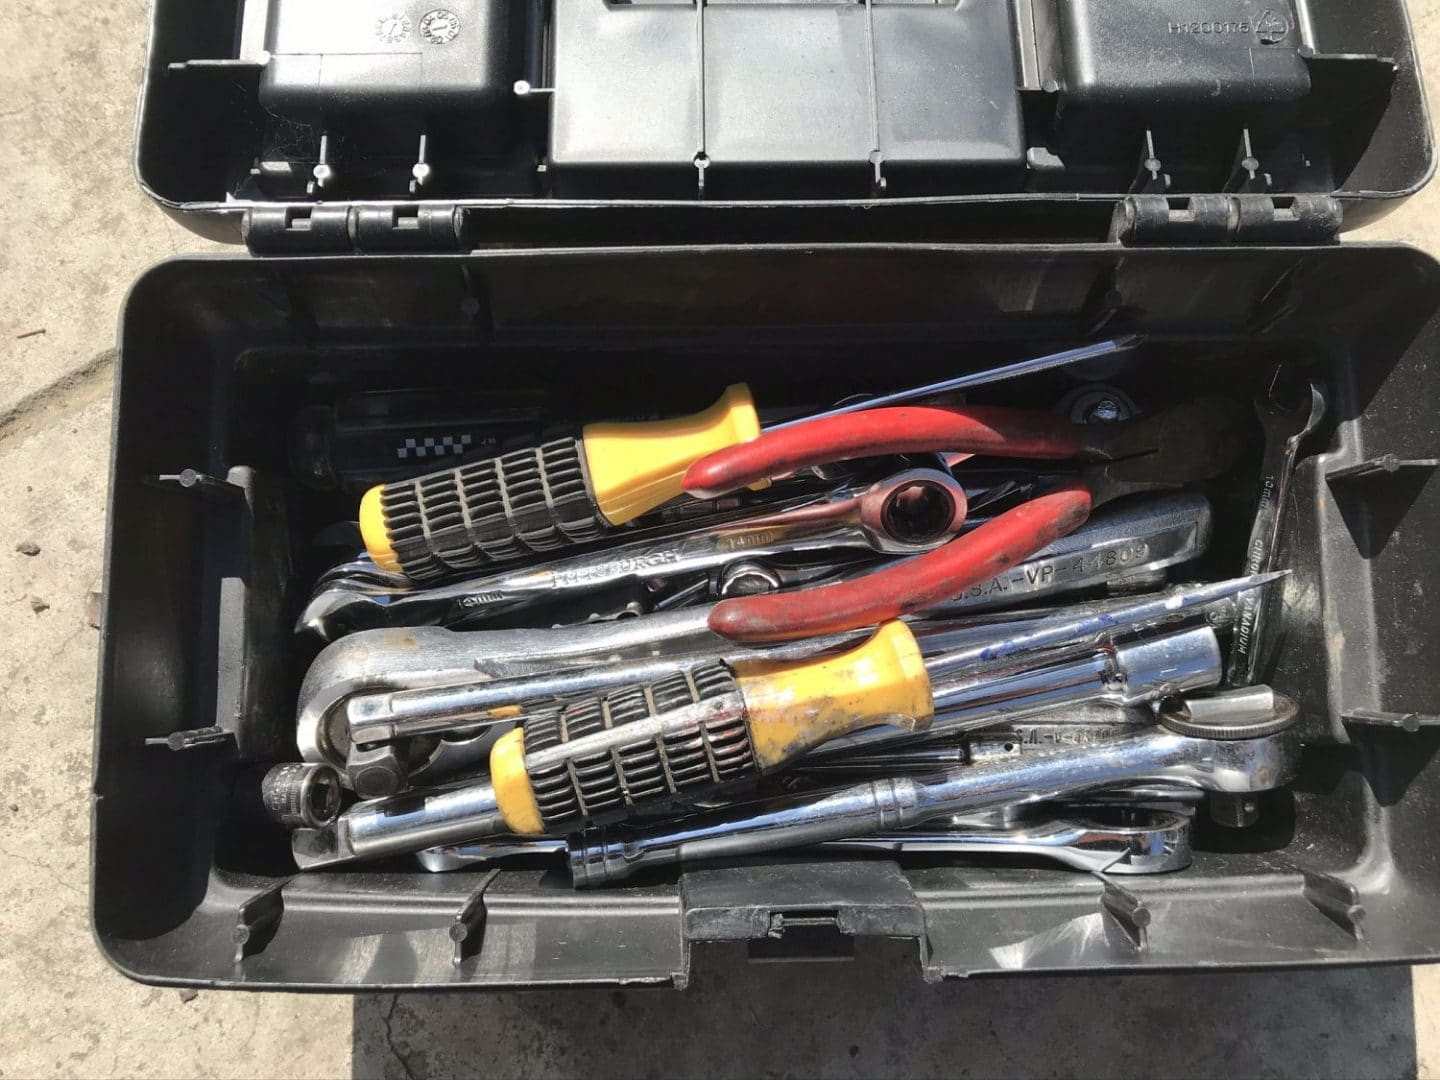 Tool Box Photo From Milky Way Photography Safety and Security Tips, Copyright 2020 Stanley Harper